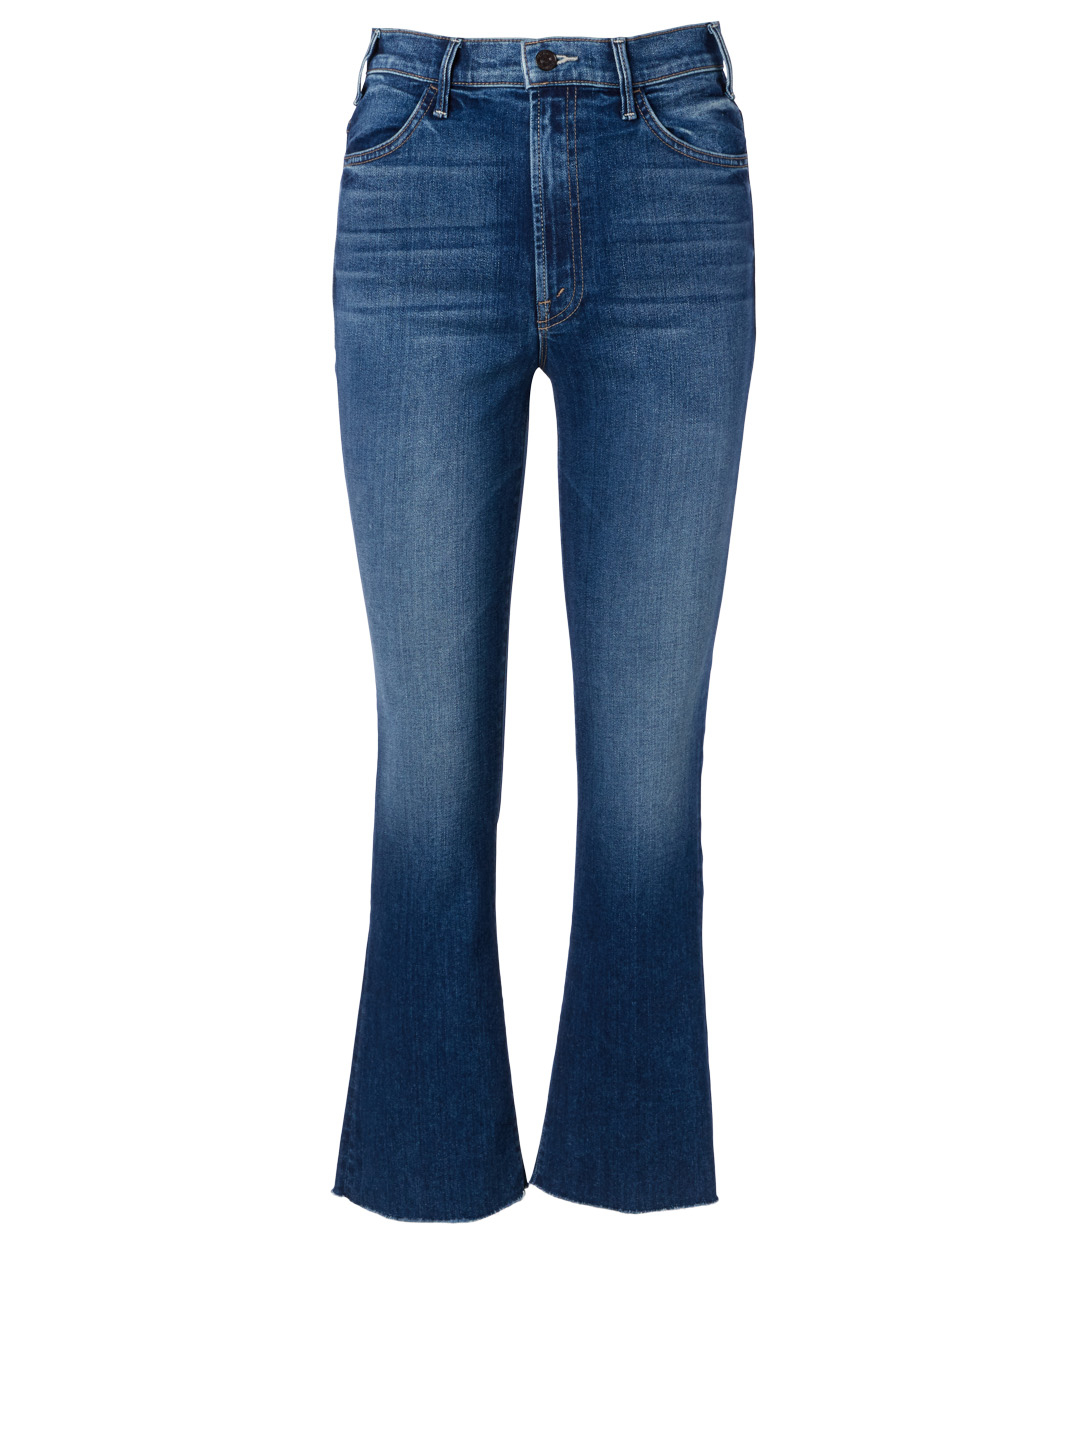 MOTHER Hustler Jeans With Ankle Fray Women's Blue